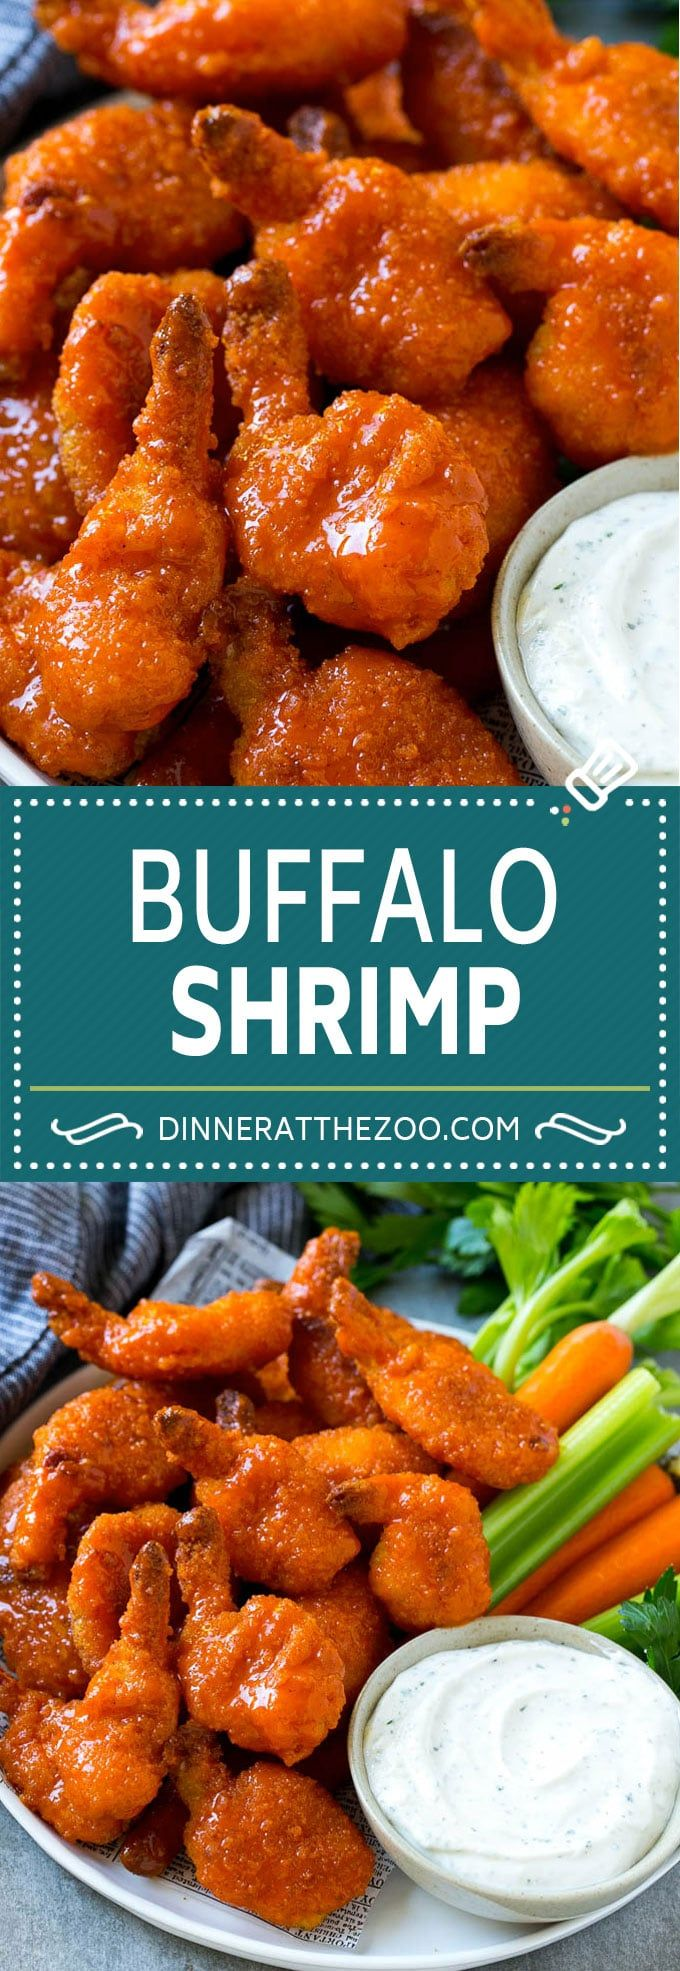 Buffalo Shrimp Recipe | Crispy Buffalo Shrimp | Fried Shrimp | Shrimp Appetizer #shrimp #appetizer #buffalo #spicy #dinner #dinneratthezoo #buffaloshrimp